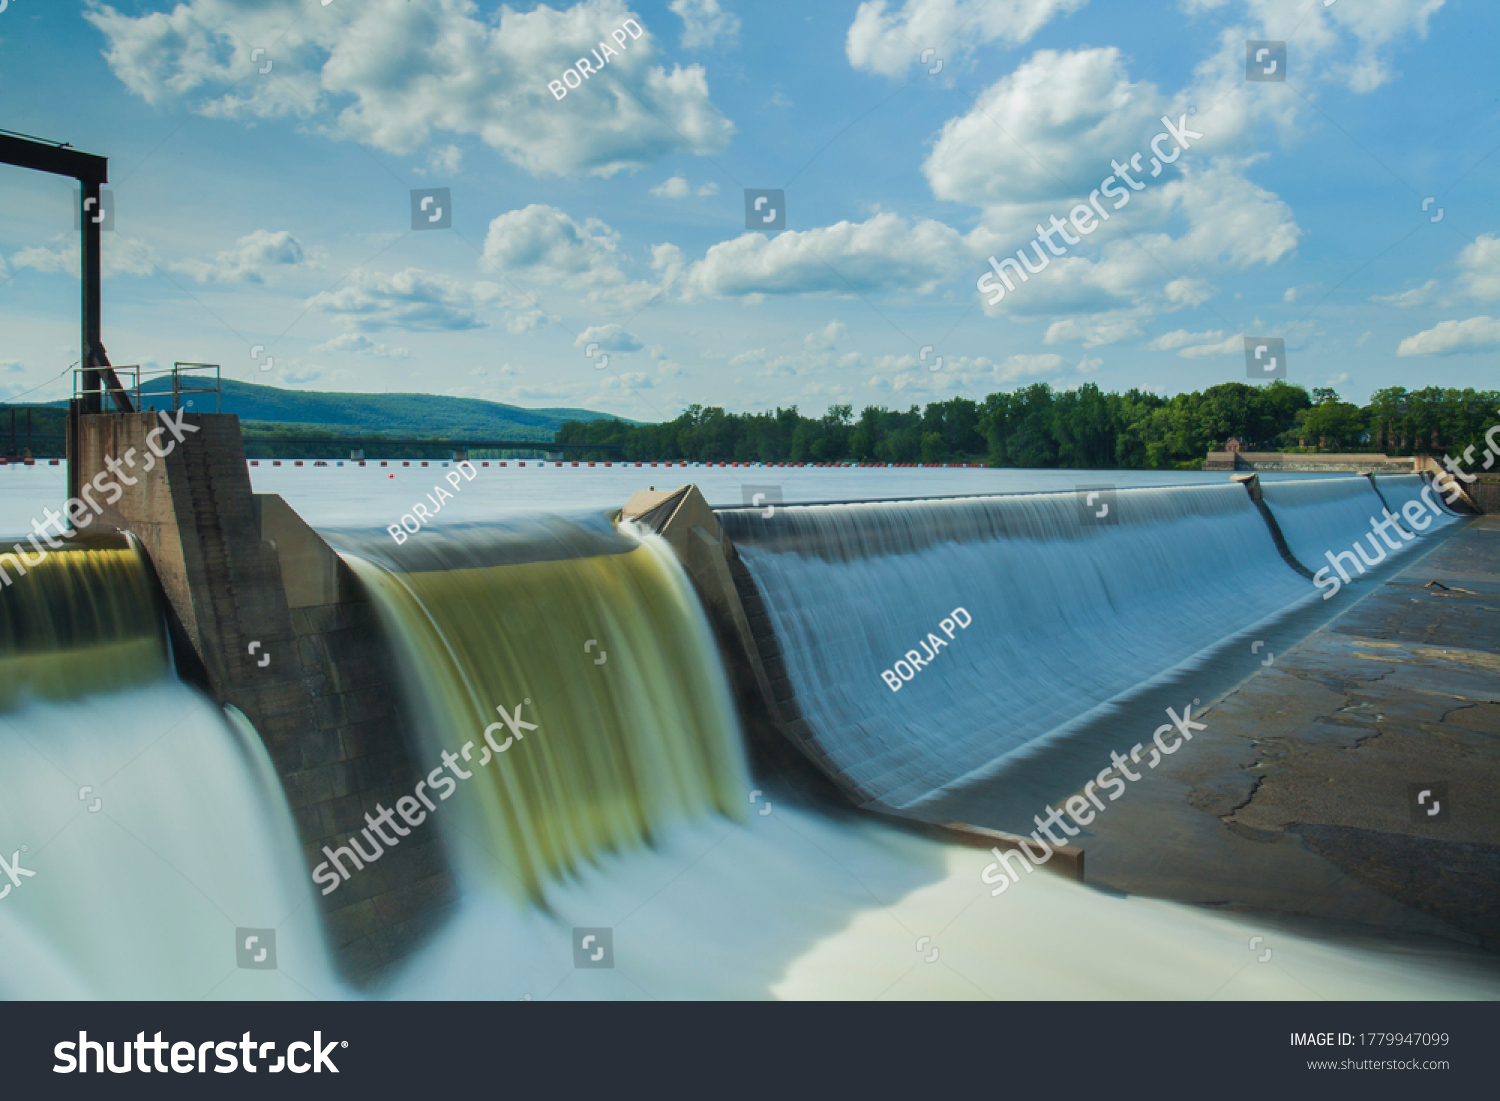 Hydroelectric power energy plant with turbines and water spills for generating green electricity. Free, green adn ecological energy concept. Climate changes #1779947099